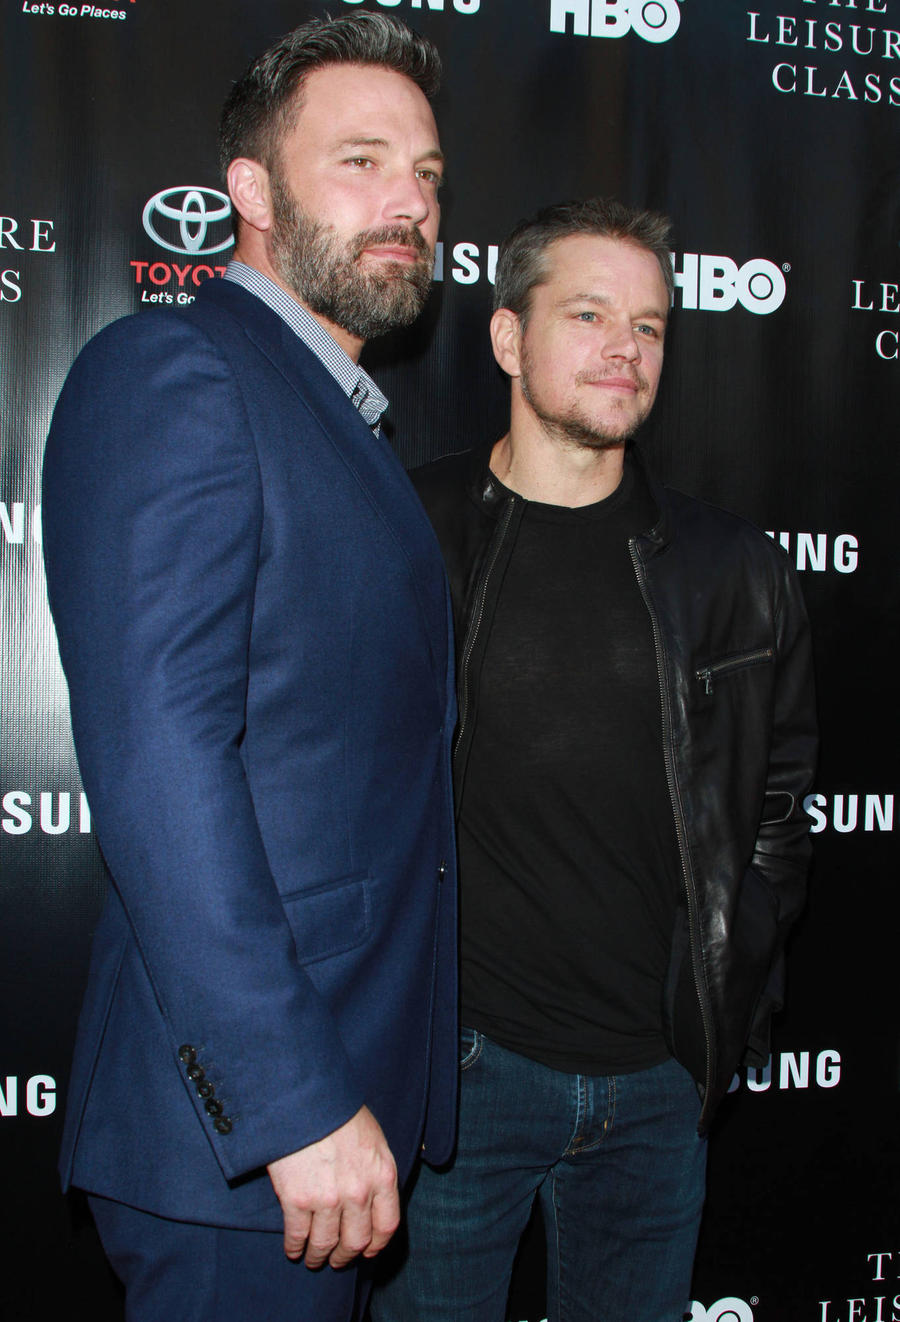 Matt Damon And Ben Affleck Planning To Resurrect Writing Partnership